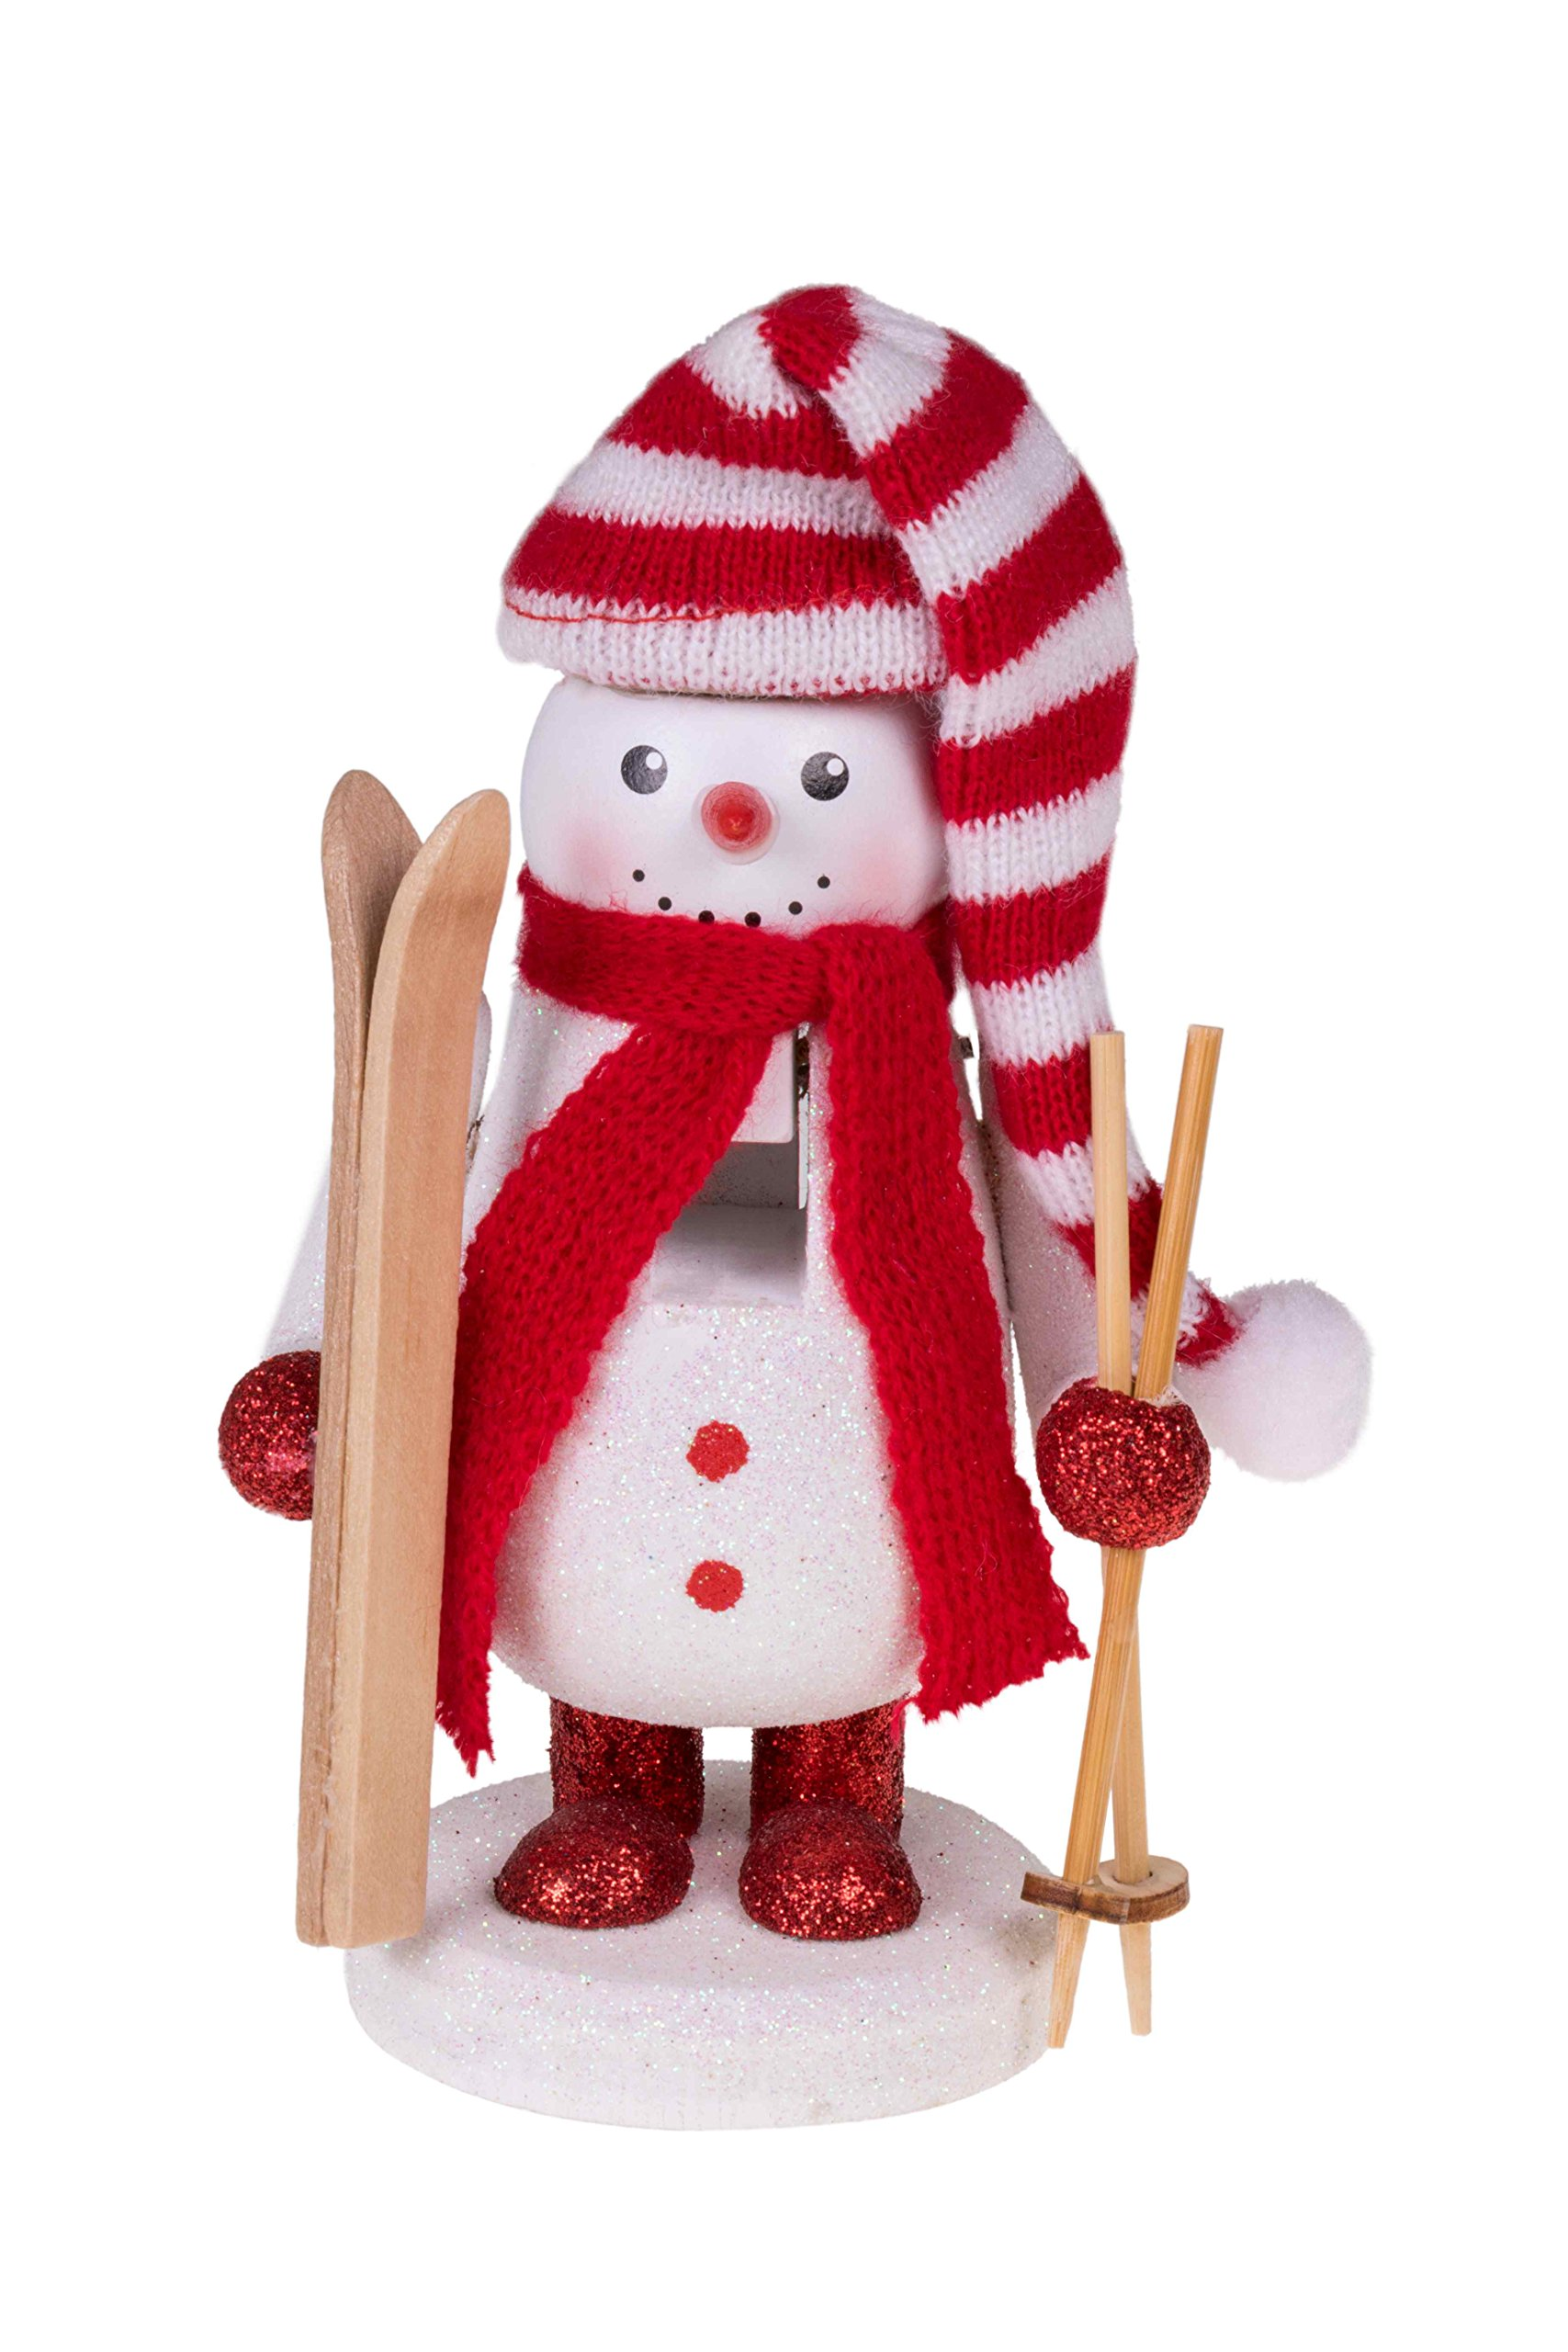 Traditional Wooden Skier Snowman Nutcracker with Skis by Clever Creations | Festive Christmas Decor | 6'' Tall with Red and White Scarf| Perfect for Shelves and Tables | 100% Wood by Clever Creations